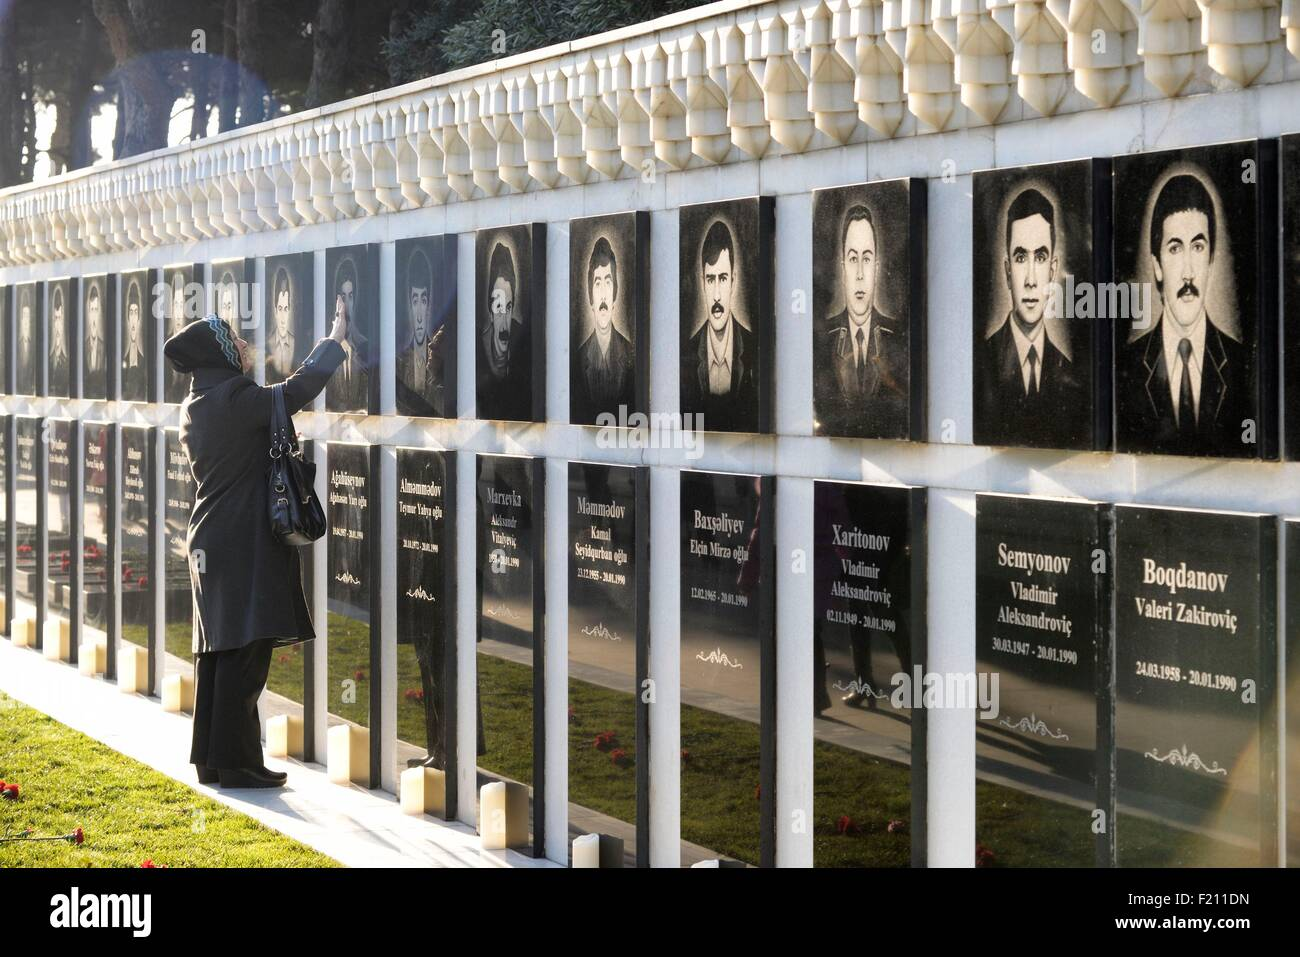 Azerbaijan, Baku, Martyrs' Lane (Alley of Martyrs), tombs of those killed by the soviet army during Black January - Stock Image